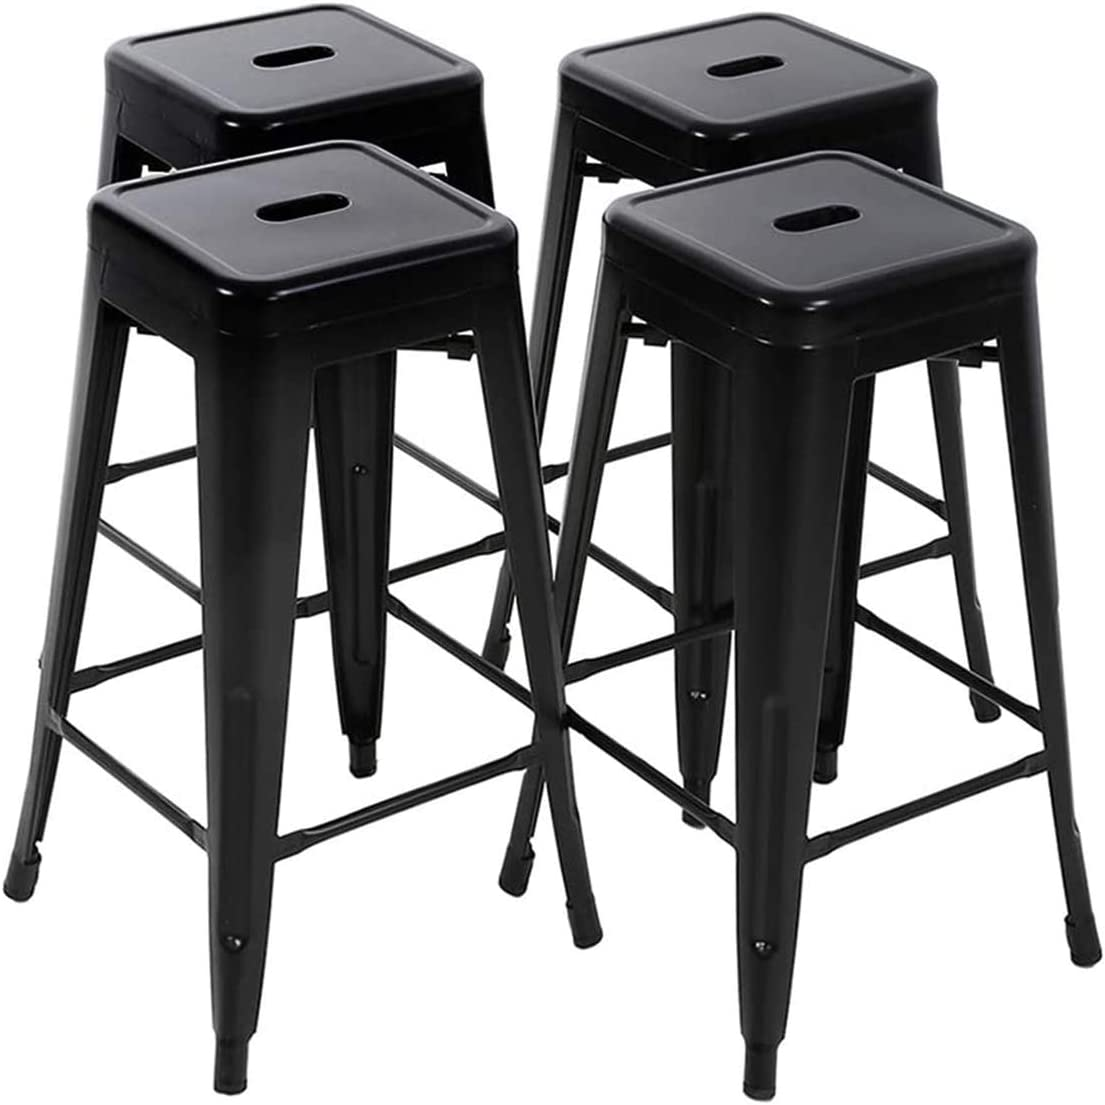 7. LCH 24 Inch Metal Industrial Patio Bar Stools, Set of 4 Indoor